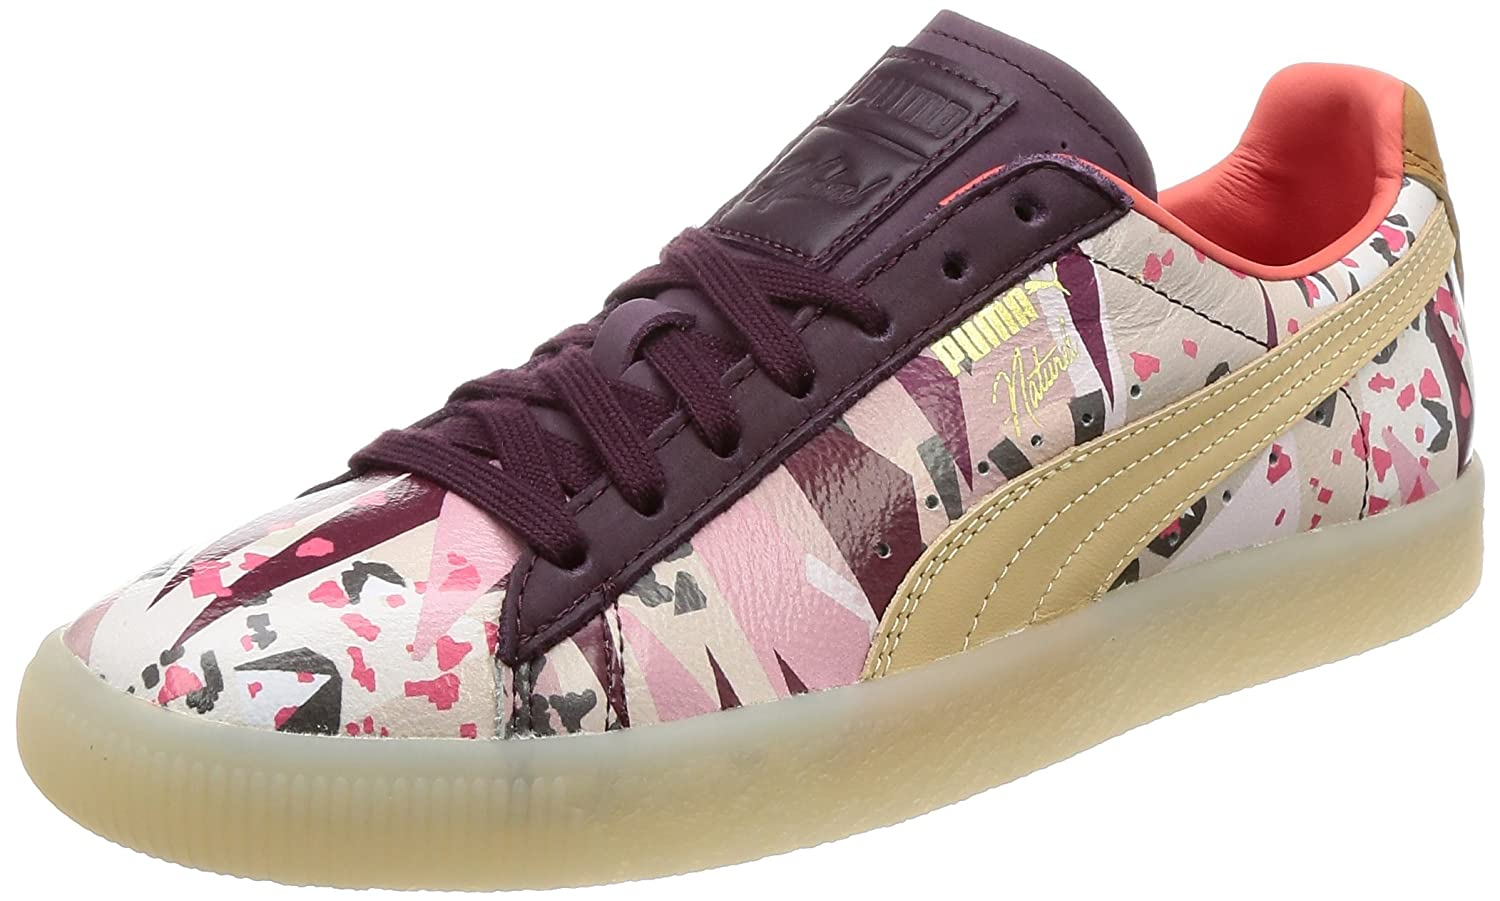 Puma x Naturel Clyde MoonDesert Damen Sneaker  EU 39 / UK 6|Beige